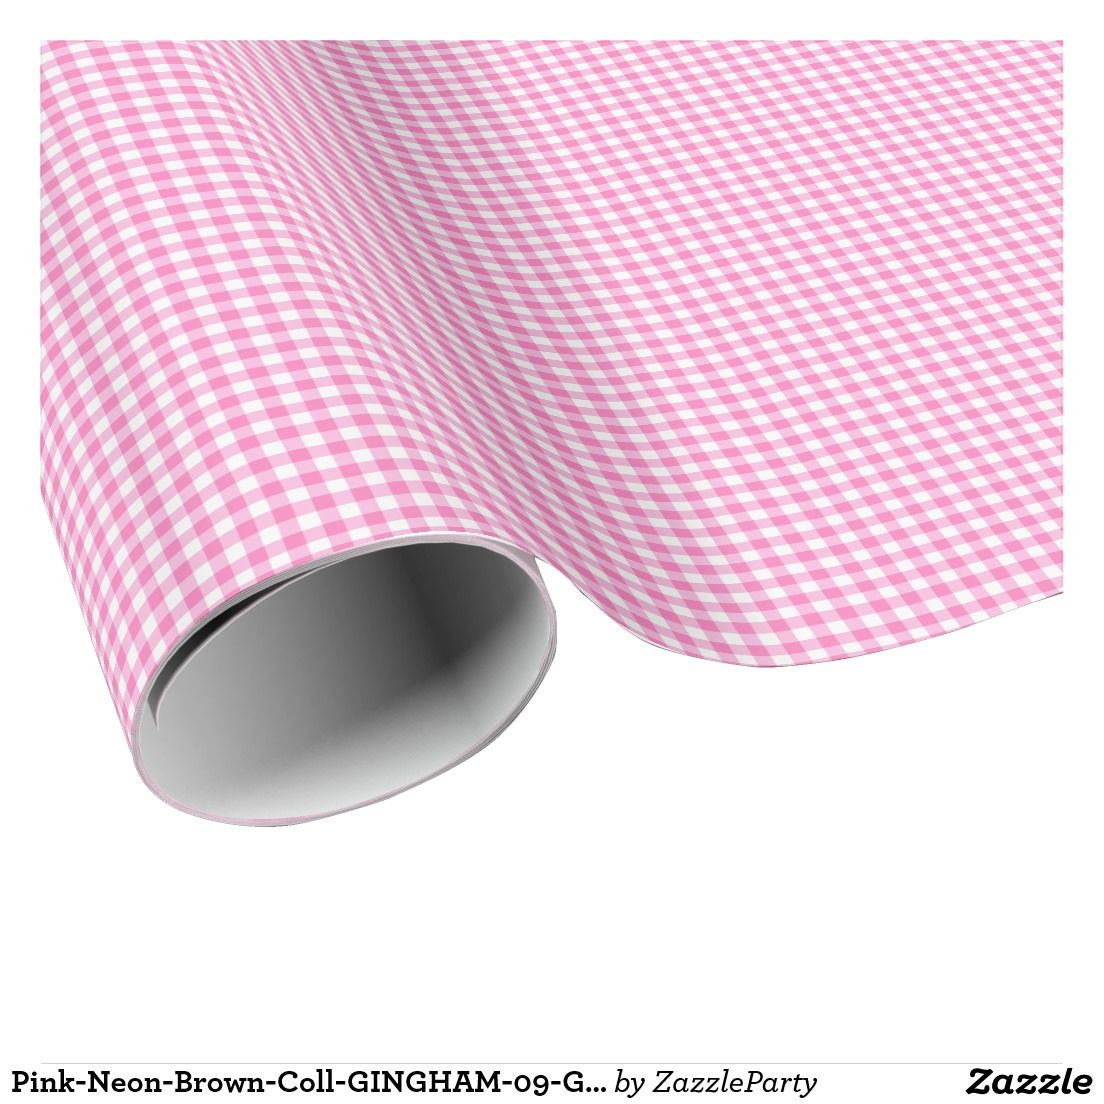 Pink-Neon-Brown-Coll-GINGHAM-09-GIFT WRAP PAPER Wrapping Paper #pink #gingham #giftwrap